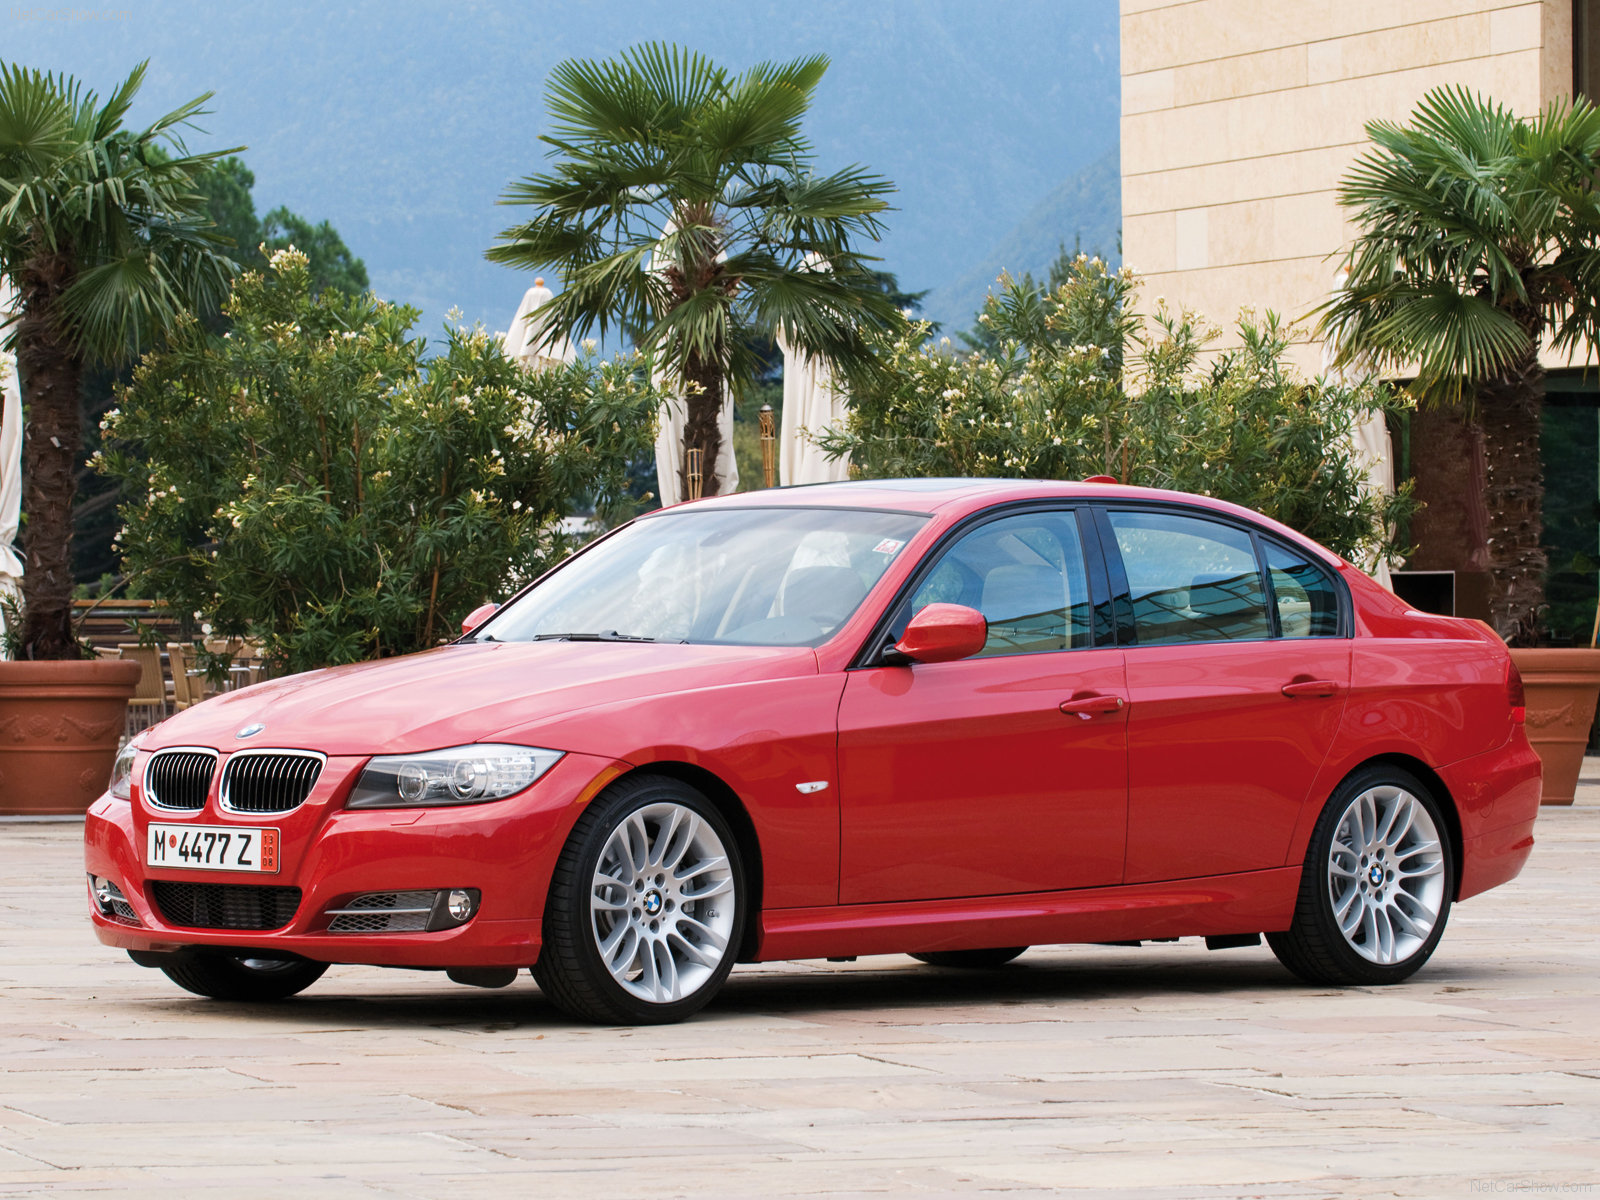 bmw 3 series e90 picture 59250 bmw photo gallery. Black Bedroom Furniture Sets. Home Design Ideas